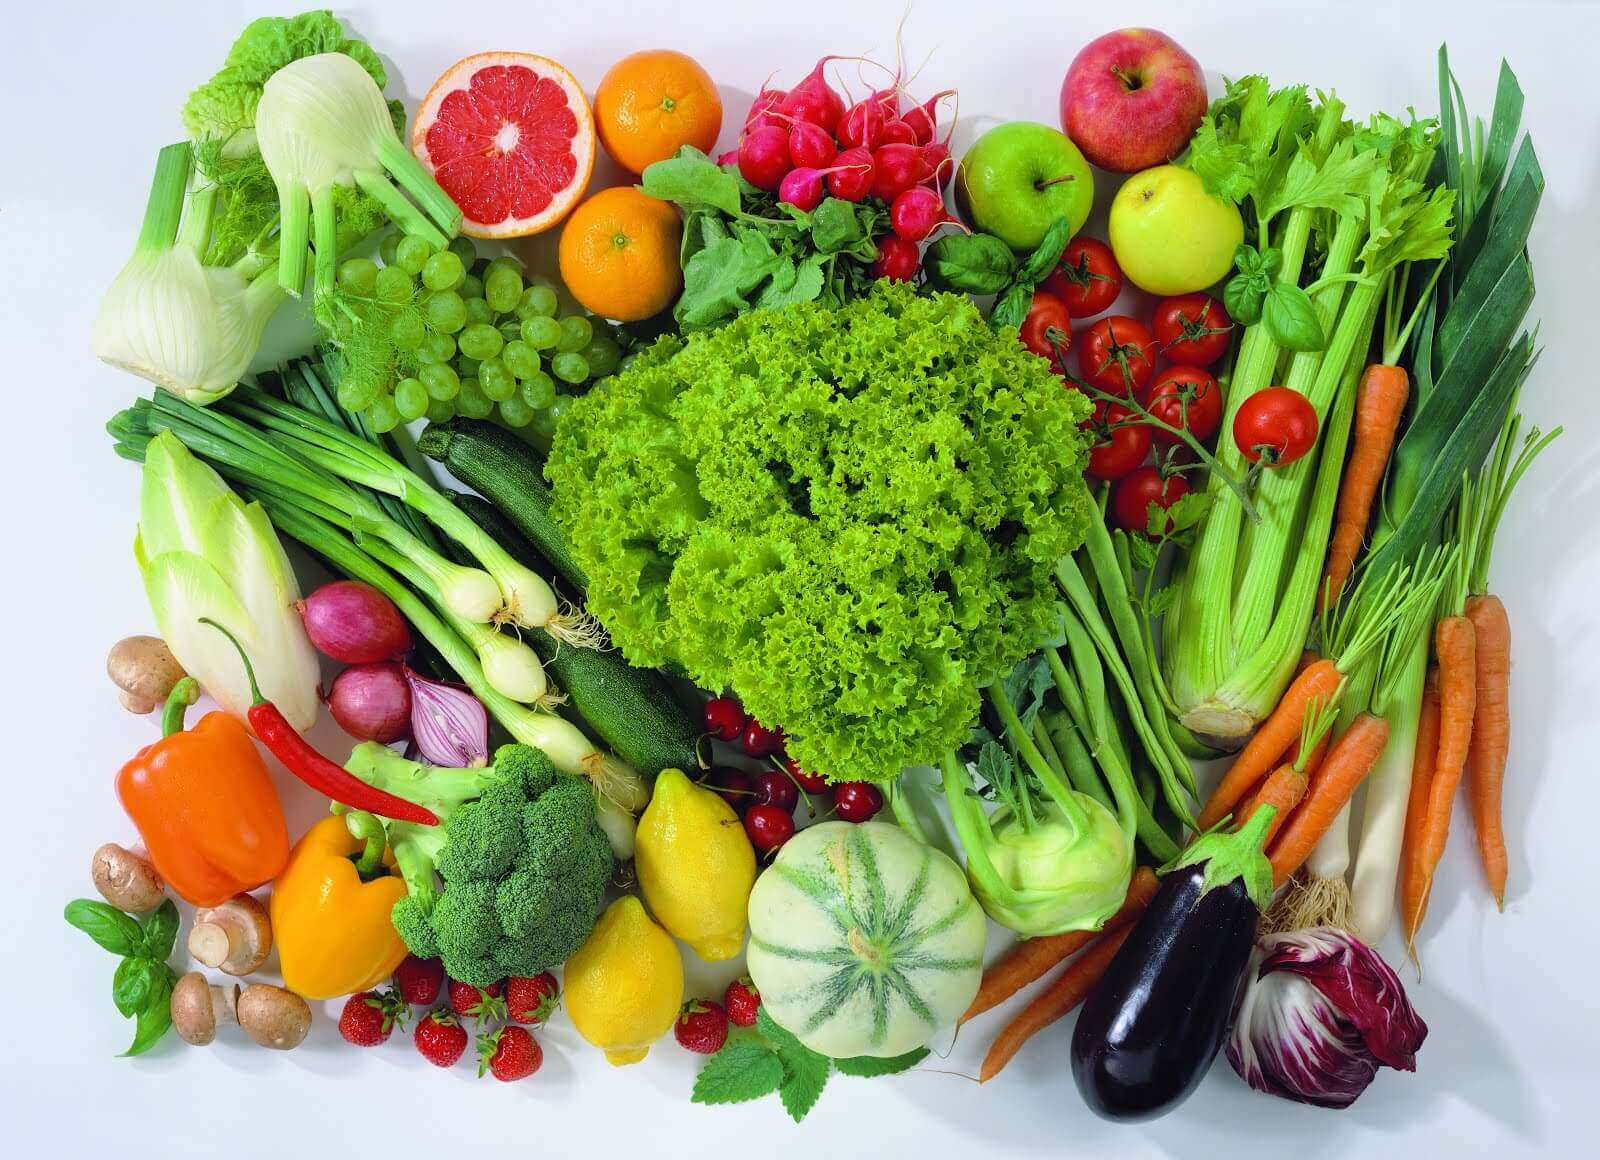 A wide selection of fruit and vegetables